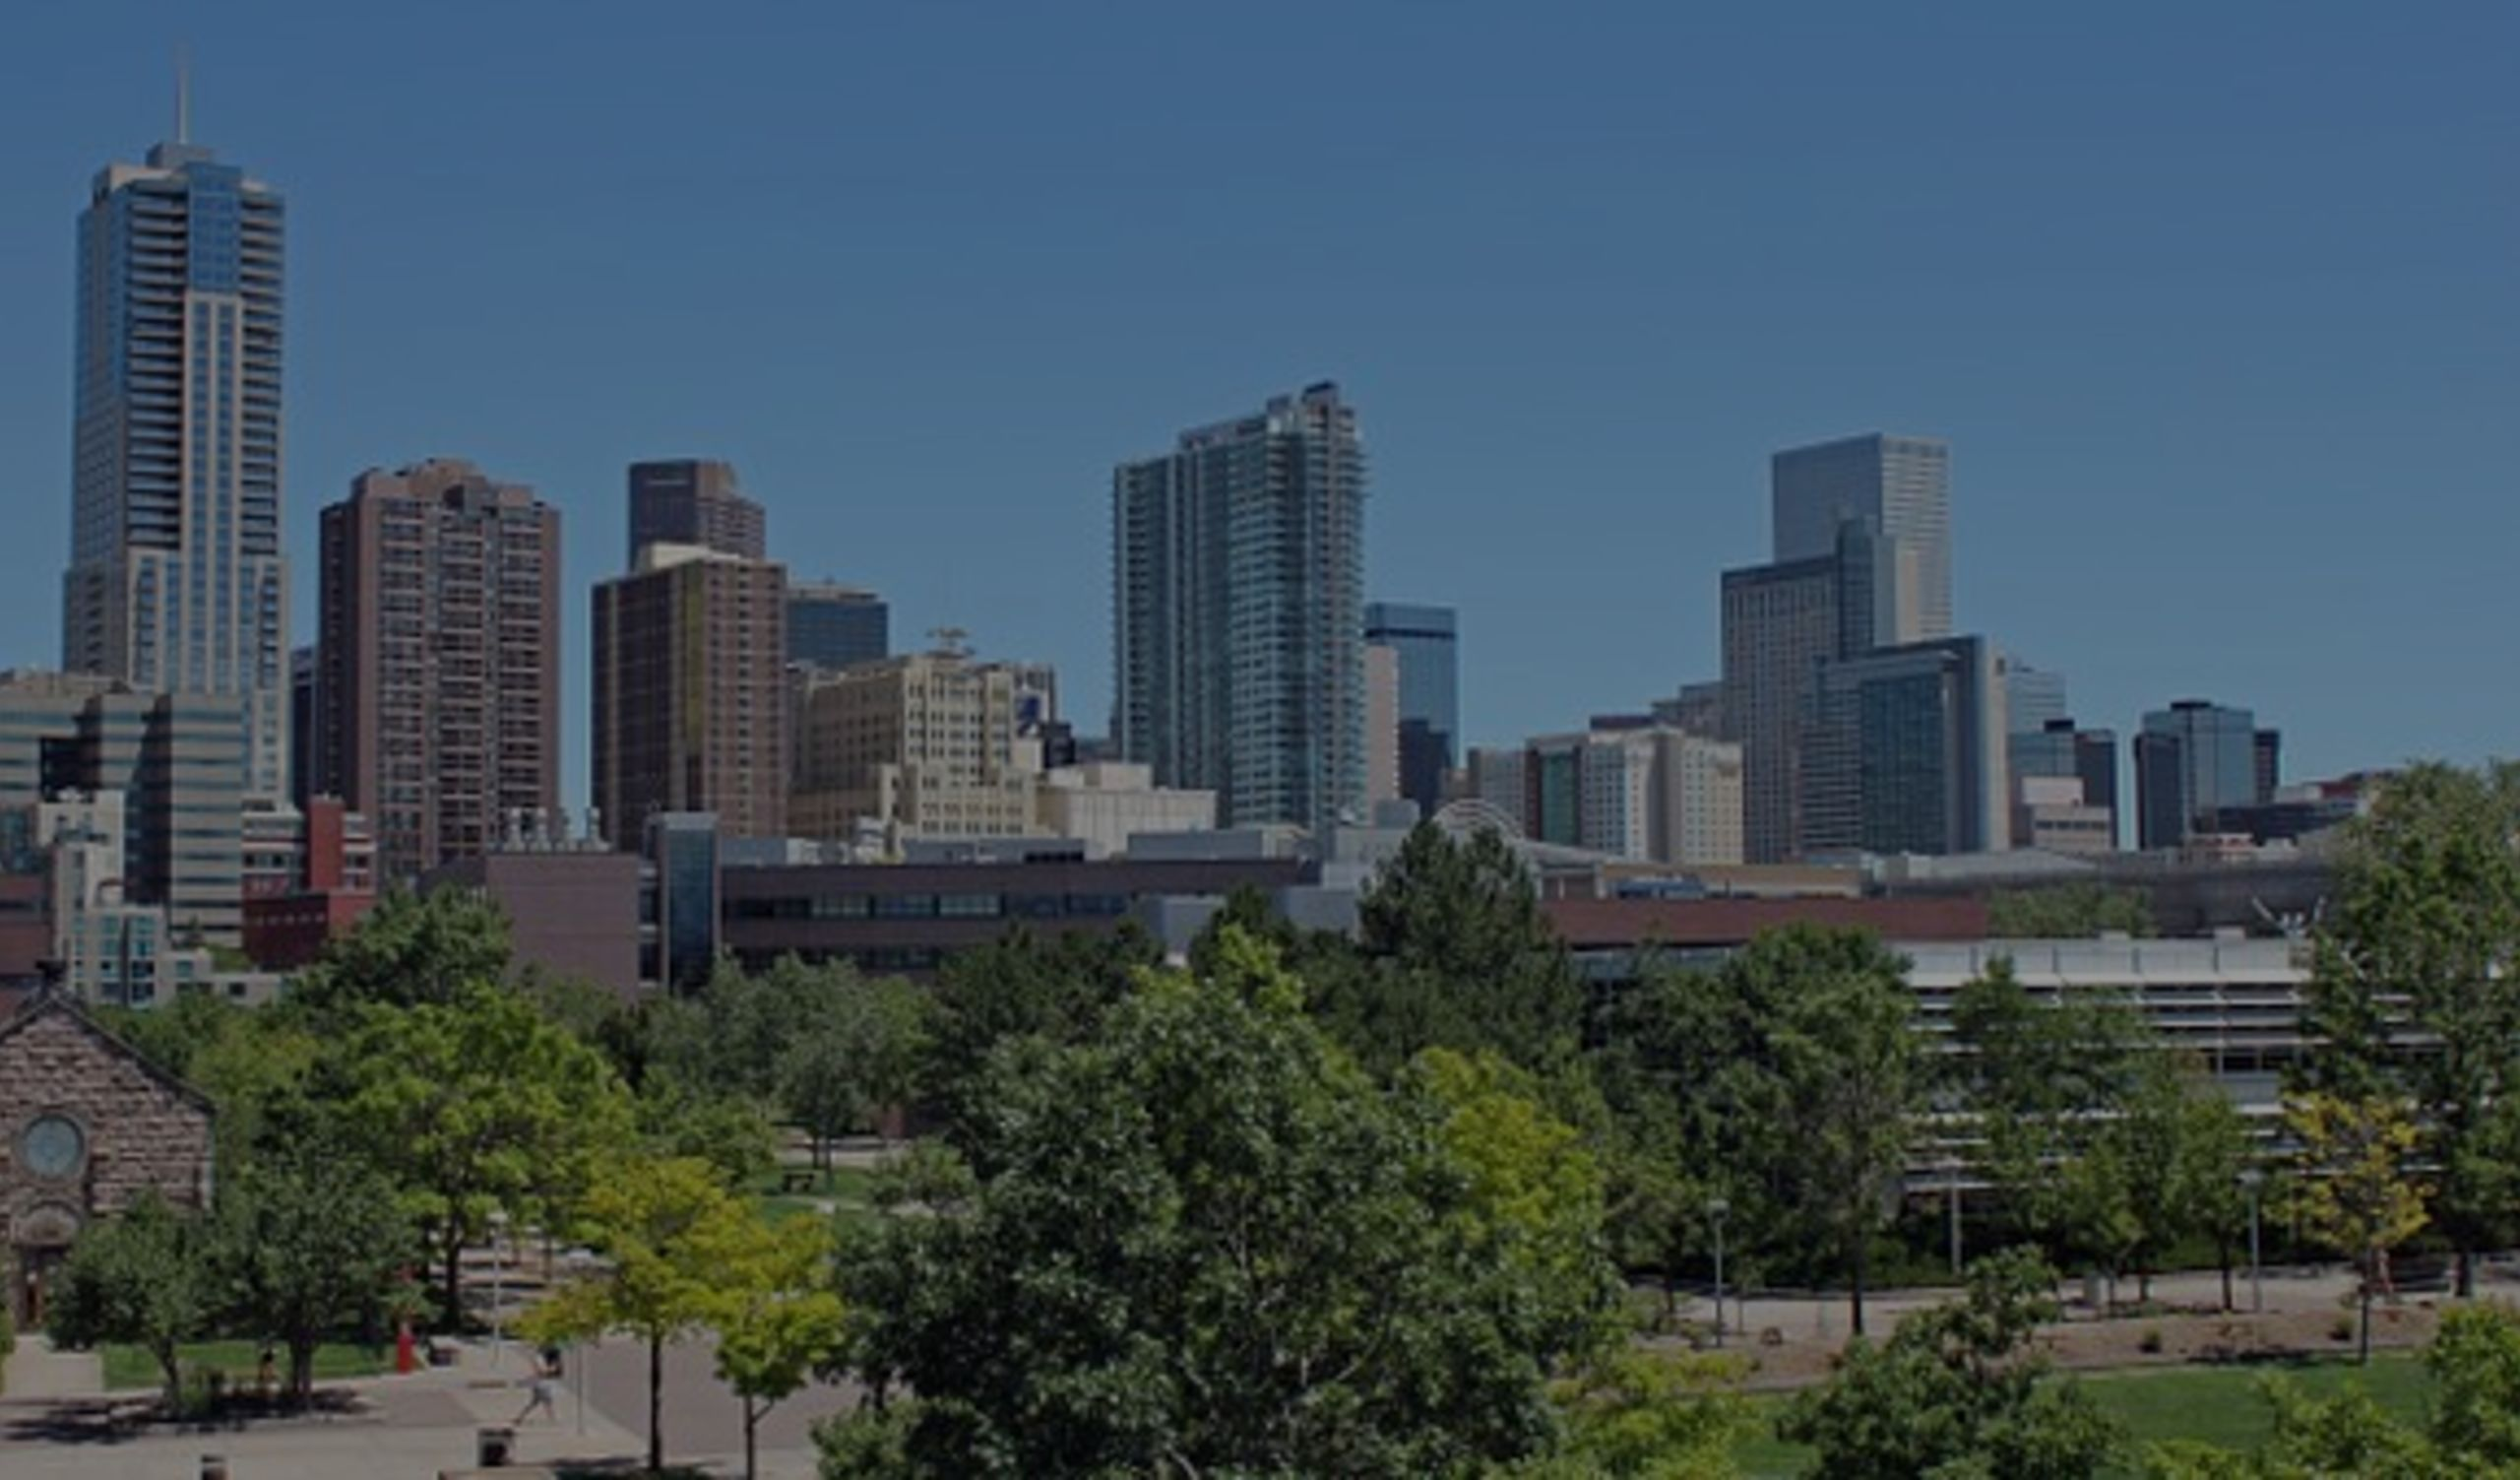 DENVER HOUSING MARKET POTENTIALLY SHIFTING TO A BUYER'S MARKET